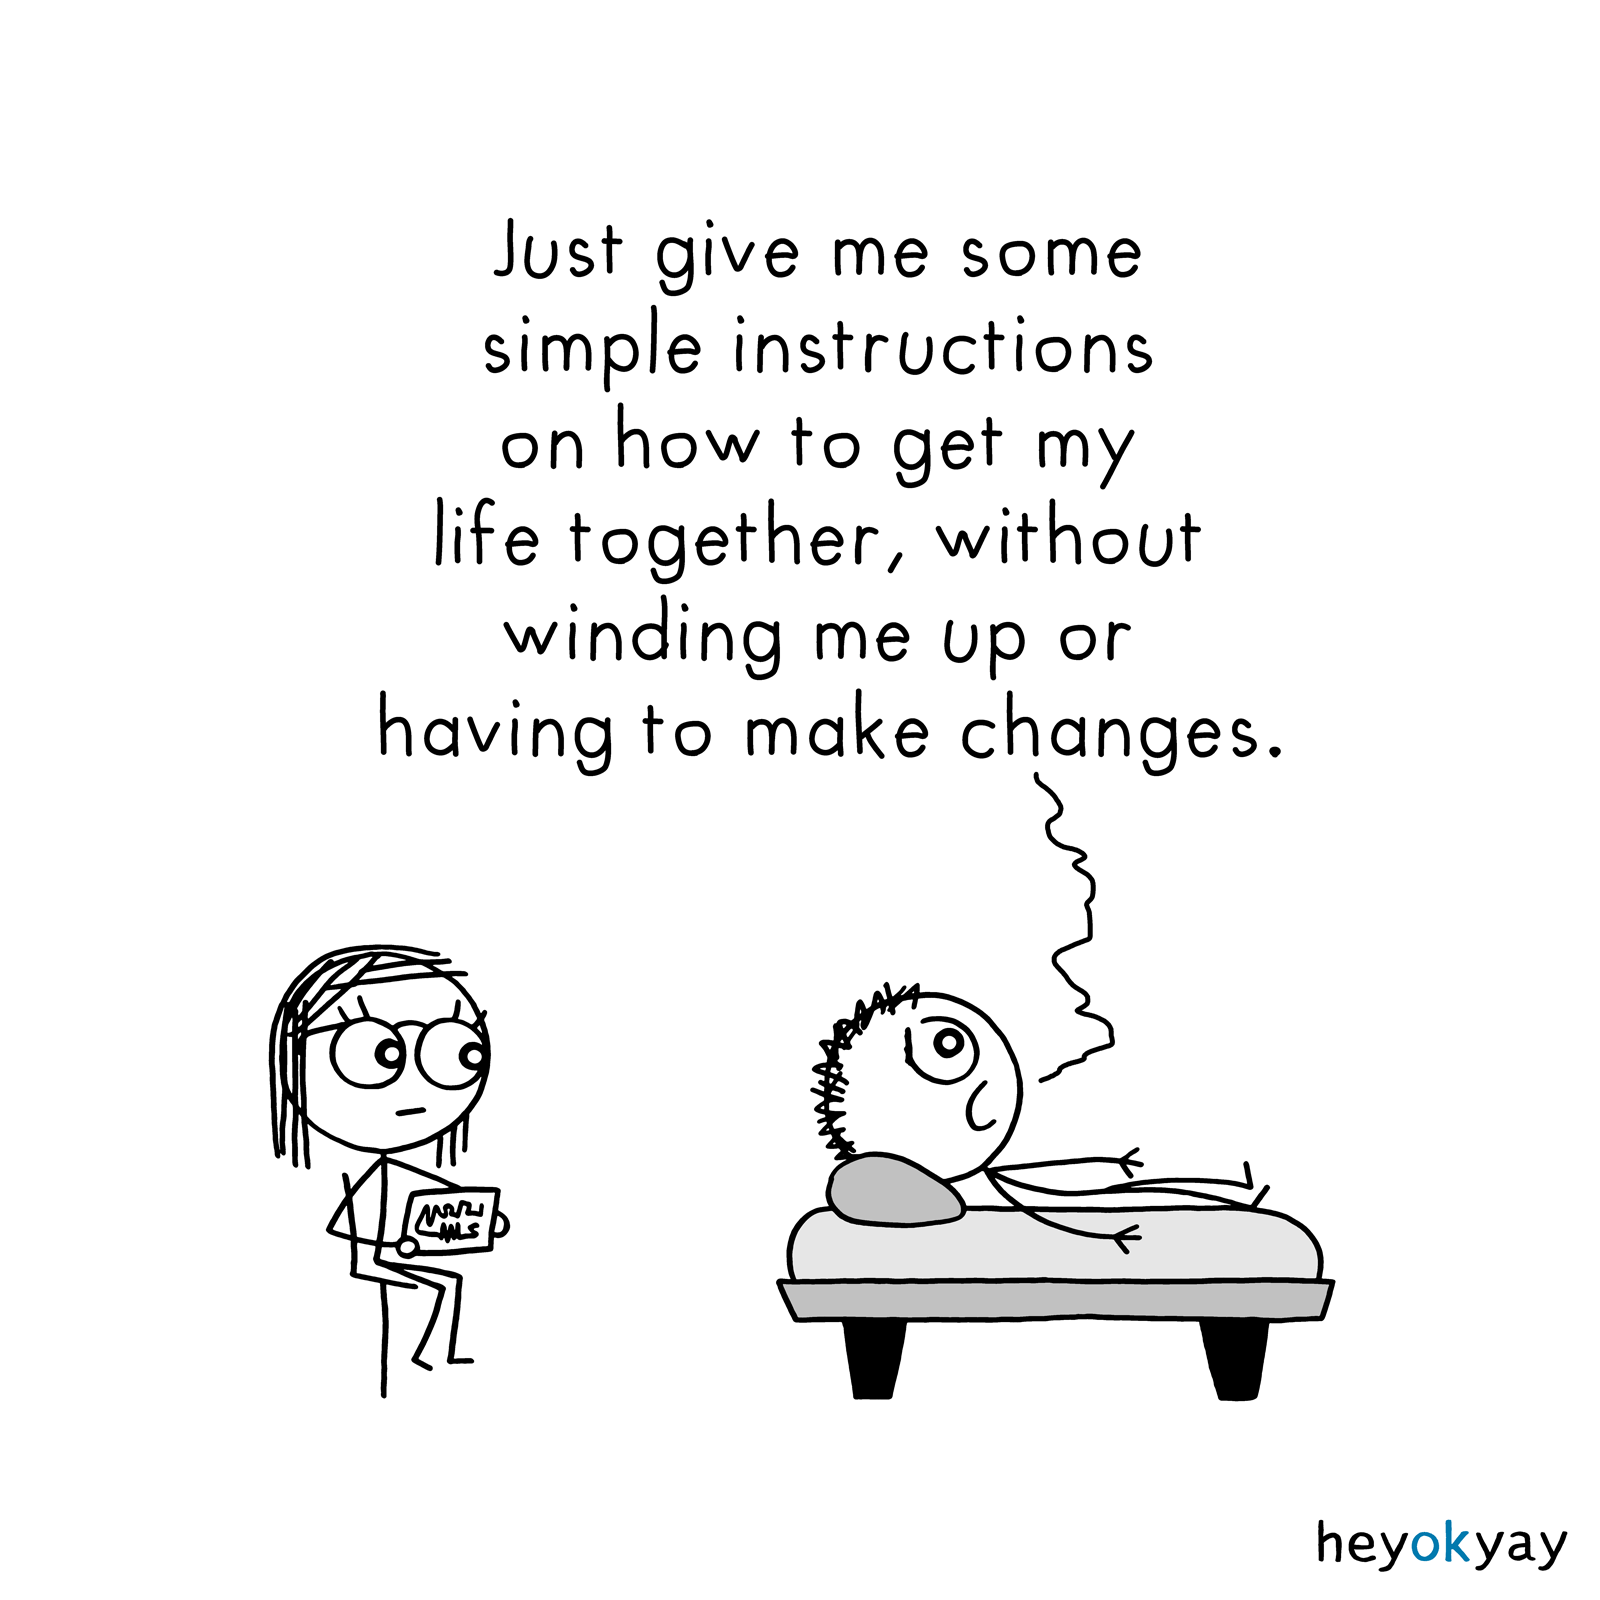 Simple Instructions heyokyay comic